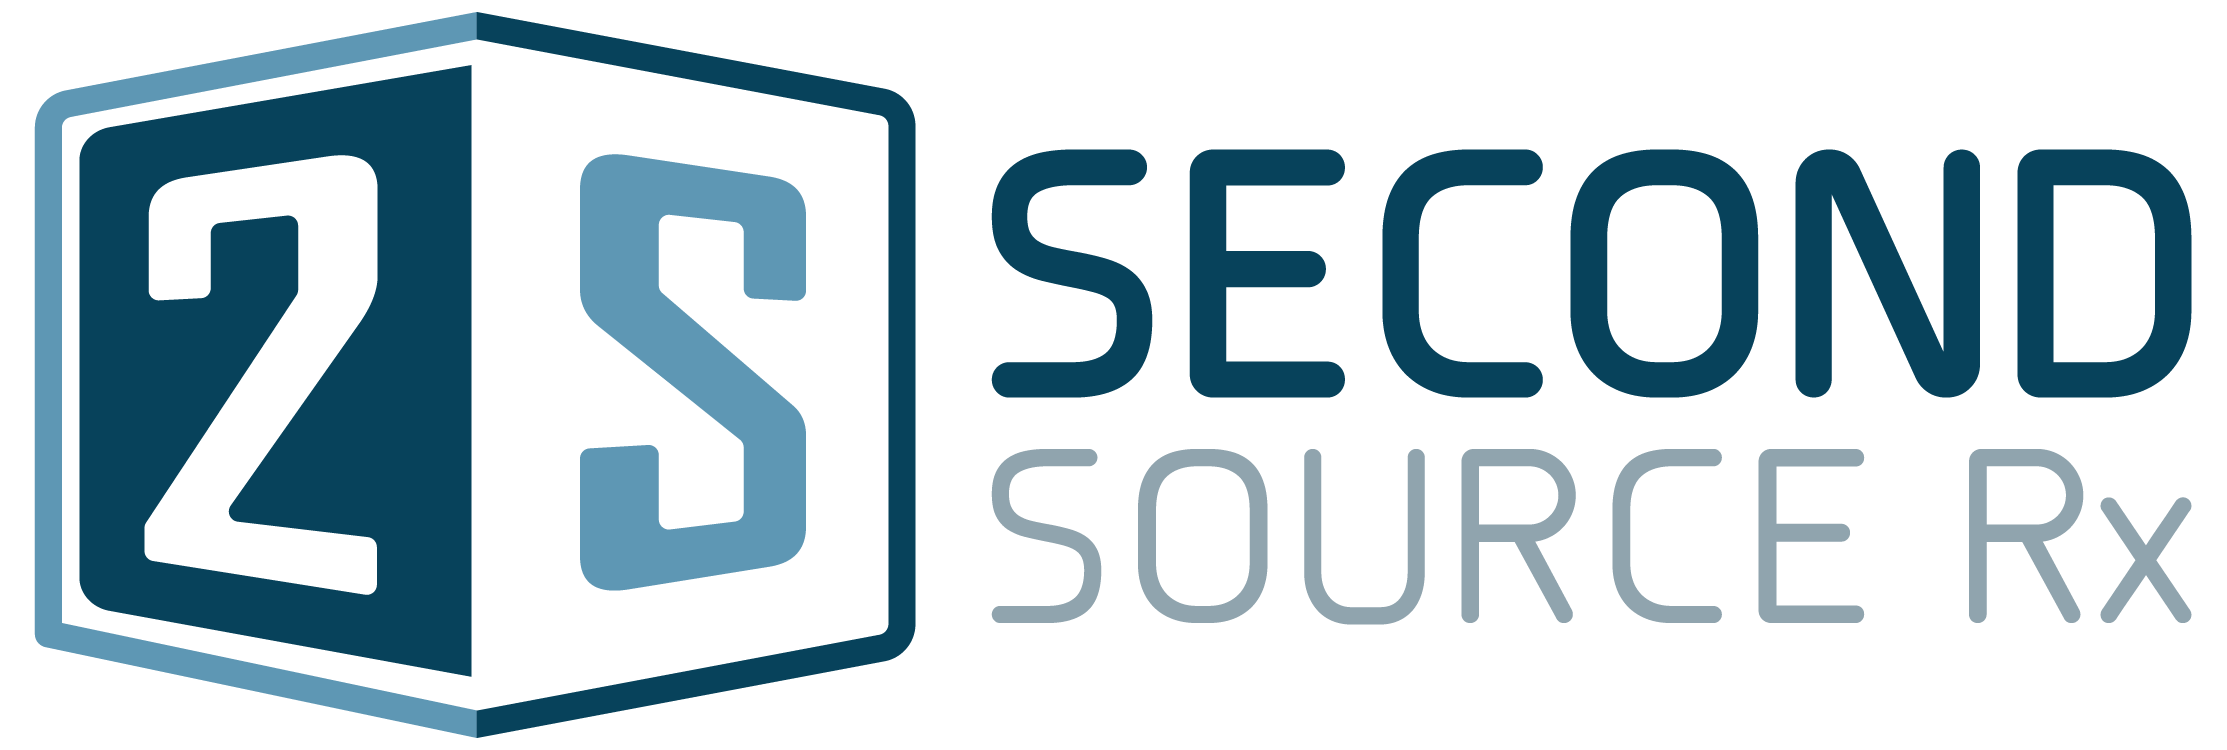 Second Source Rx Logo